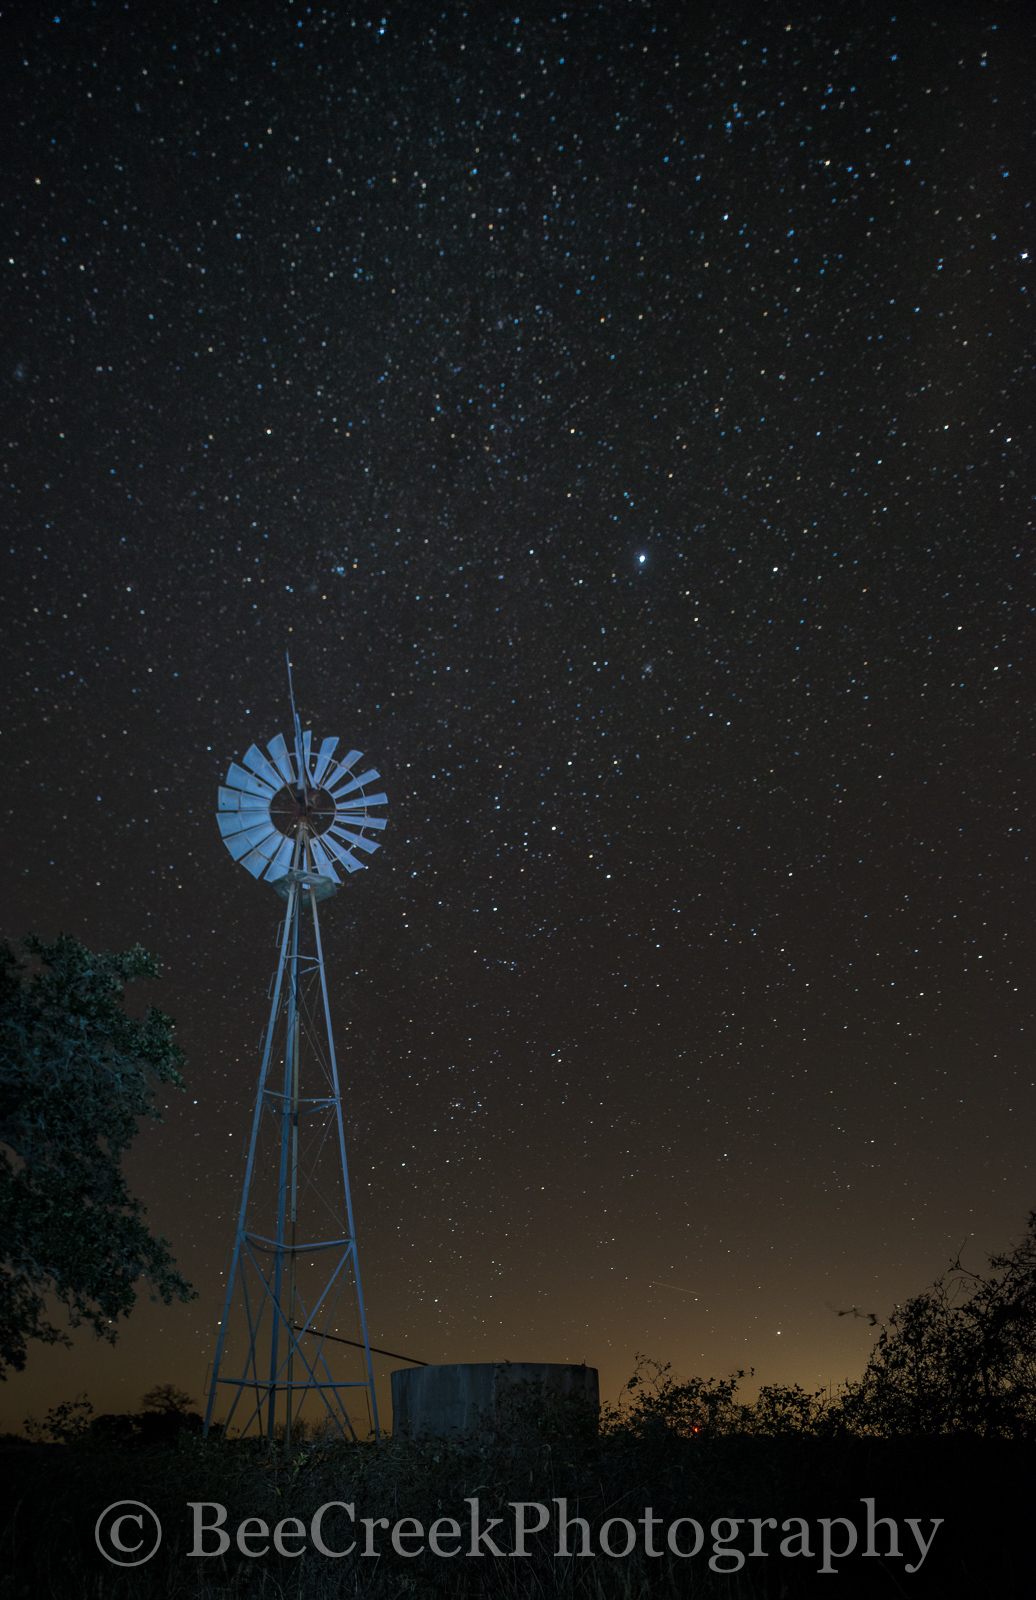 images of stars, images of windmill, night skys, photo of stars, photos of windmill, pictures of stars, pictures of windmills, rural night images, stars, windmill and stars, photo